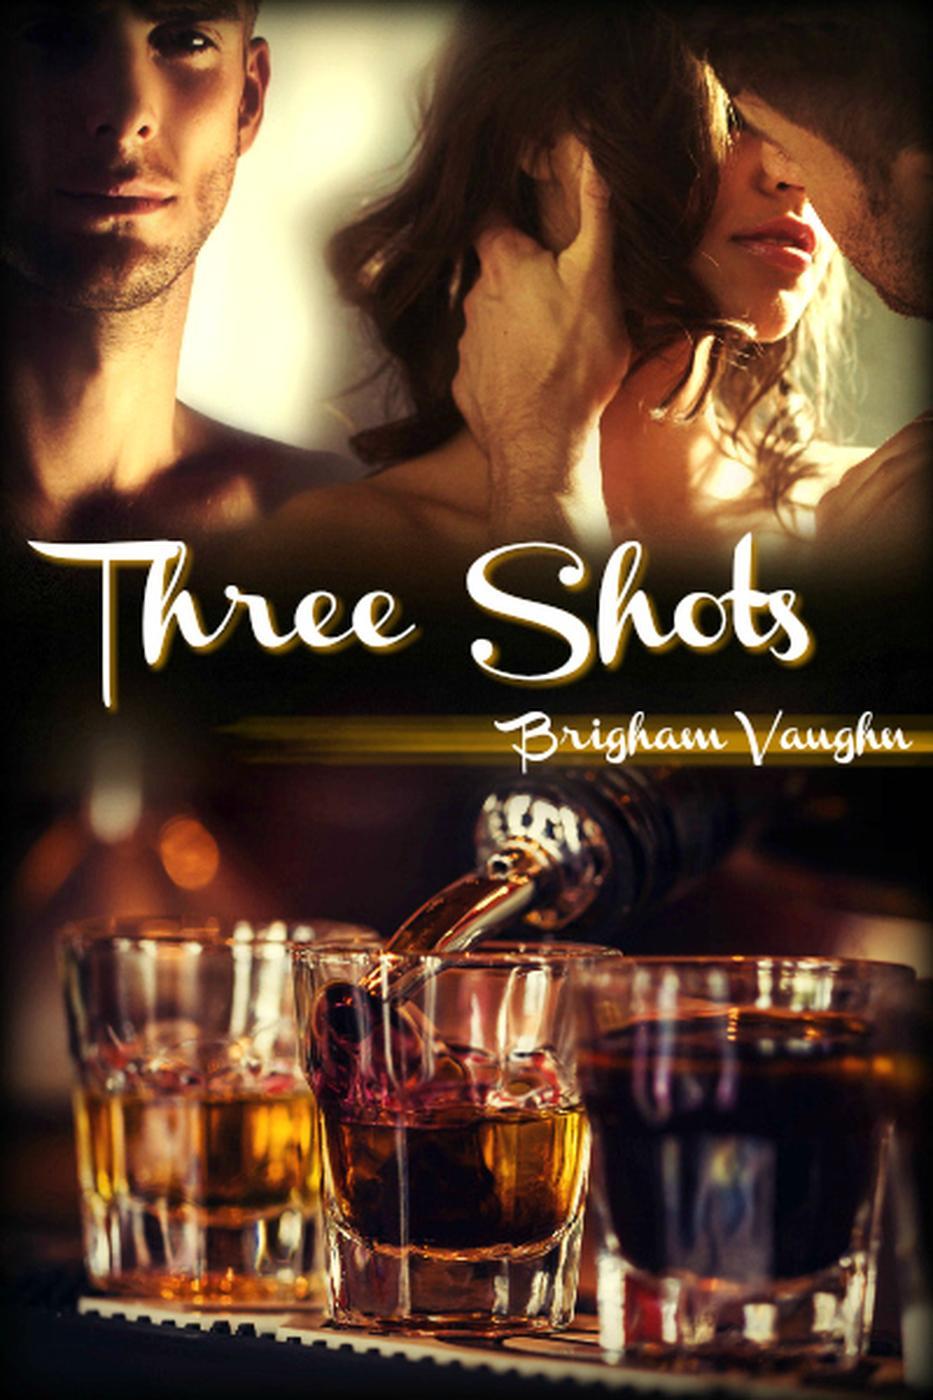 Three Shots - Brigham Vaughn